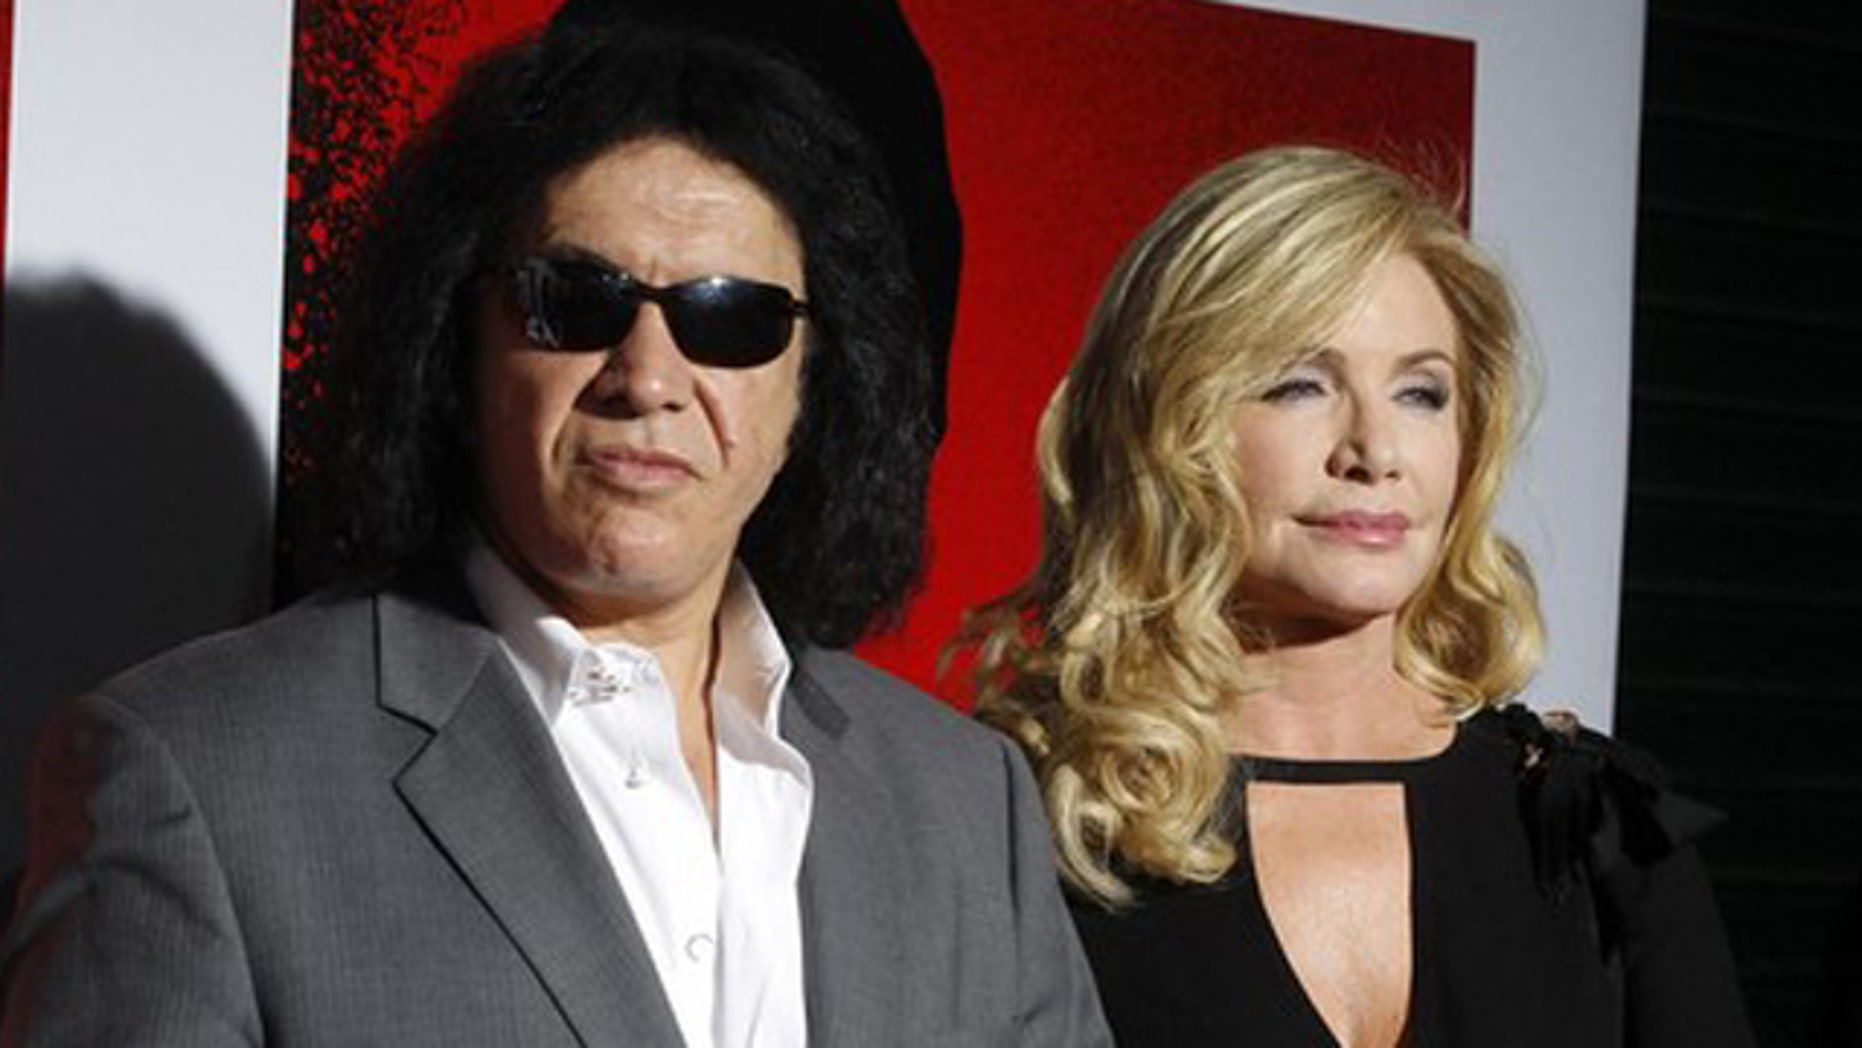 """Aug. 23: Gene Simmons of the band Kiss and actress Shannon Tweed arrive at the Blu-ray disc launch party for the 1983 classic film """"Scarface"""" in Los Angeles, California."""